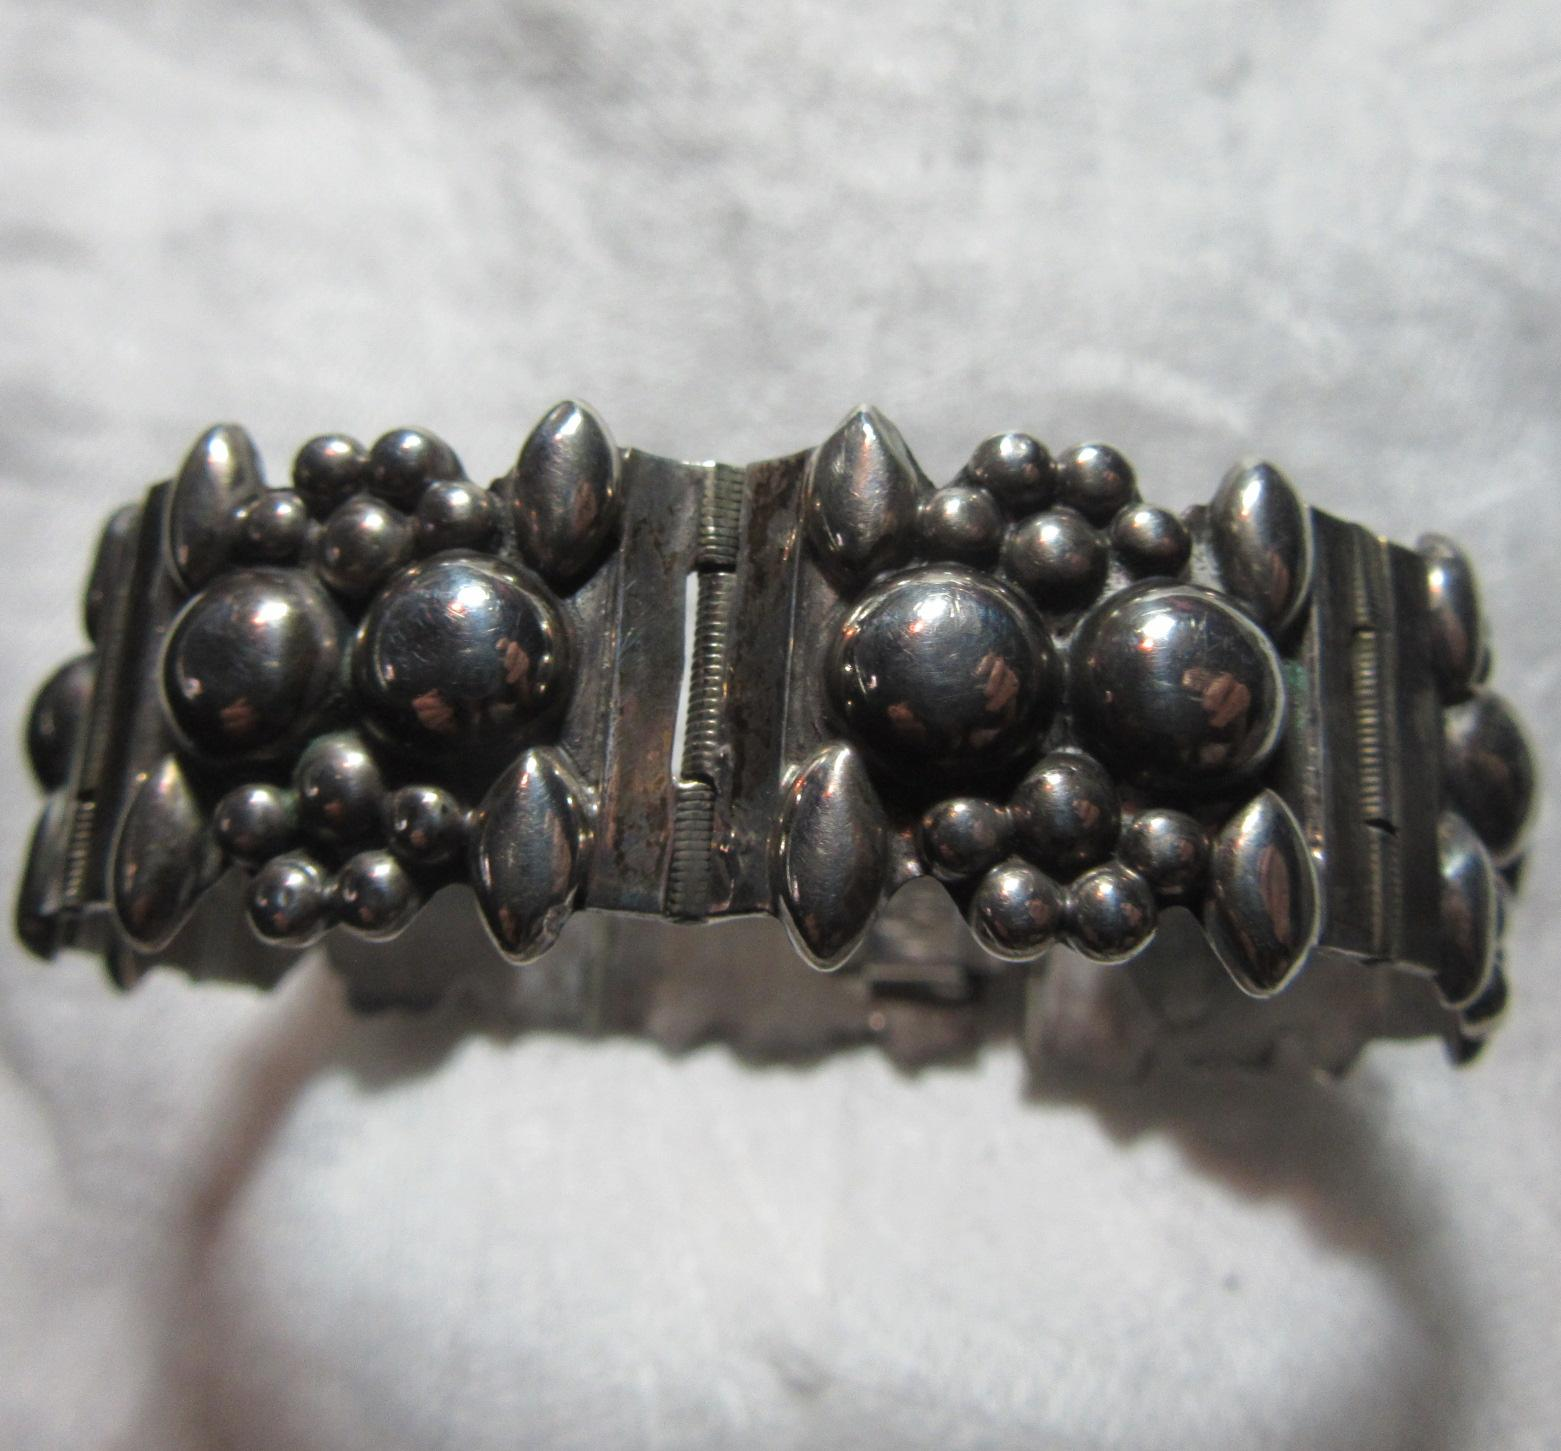 Mexican Sterling Silver Bracelet Ornate Design Fine Jewelry